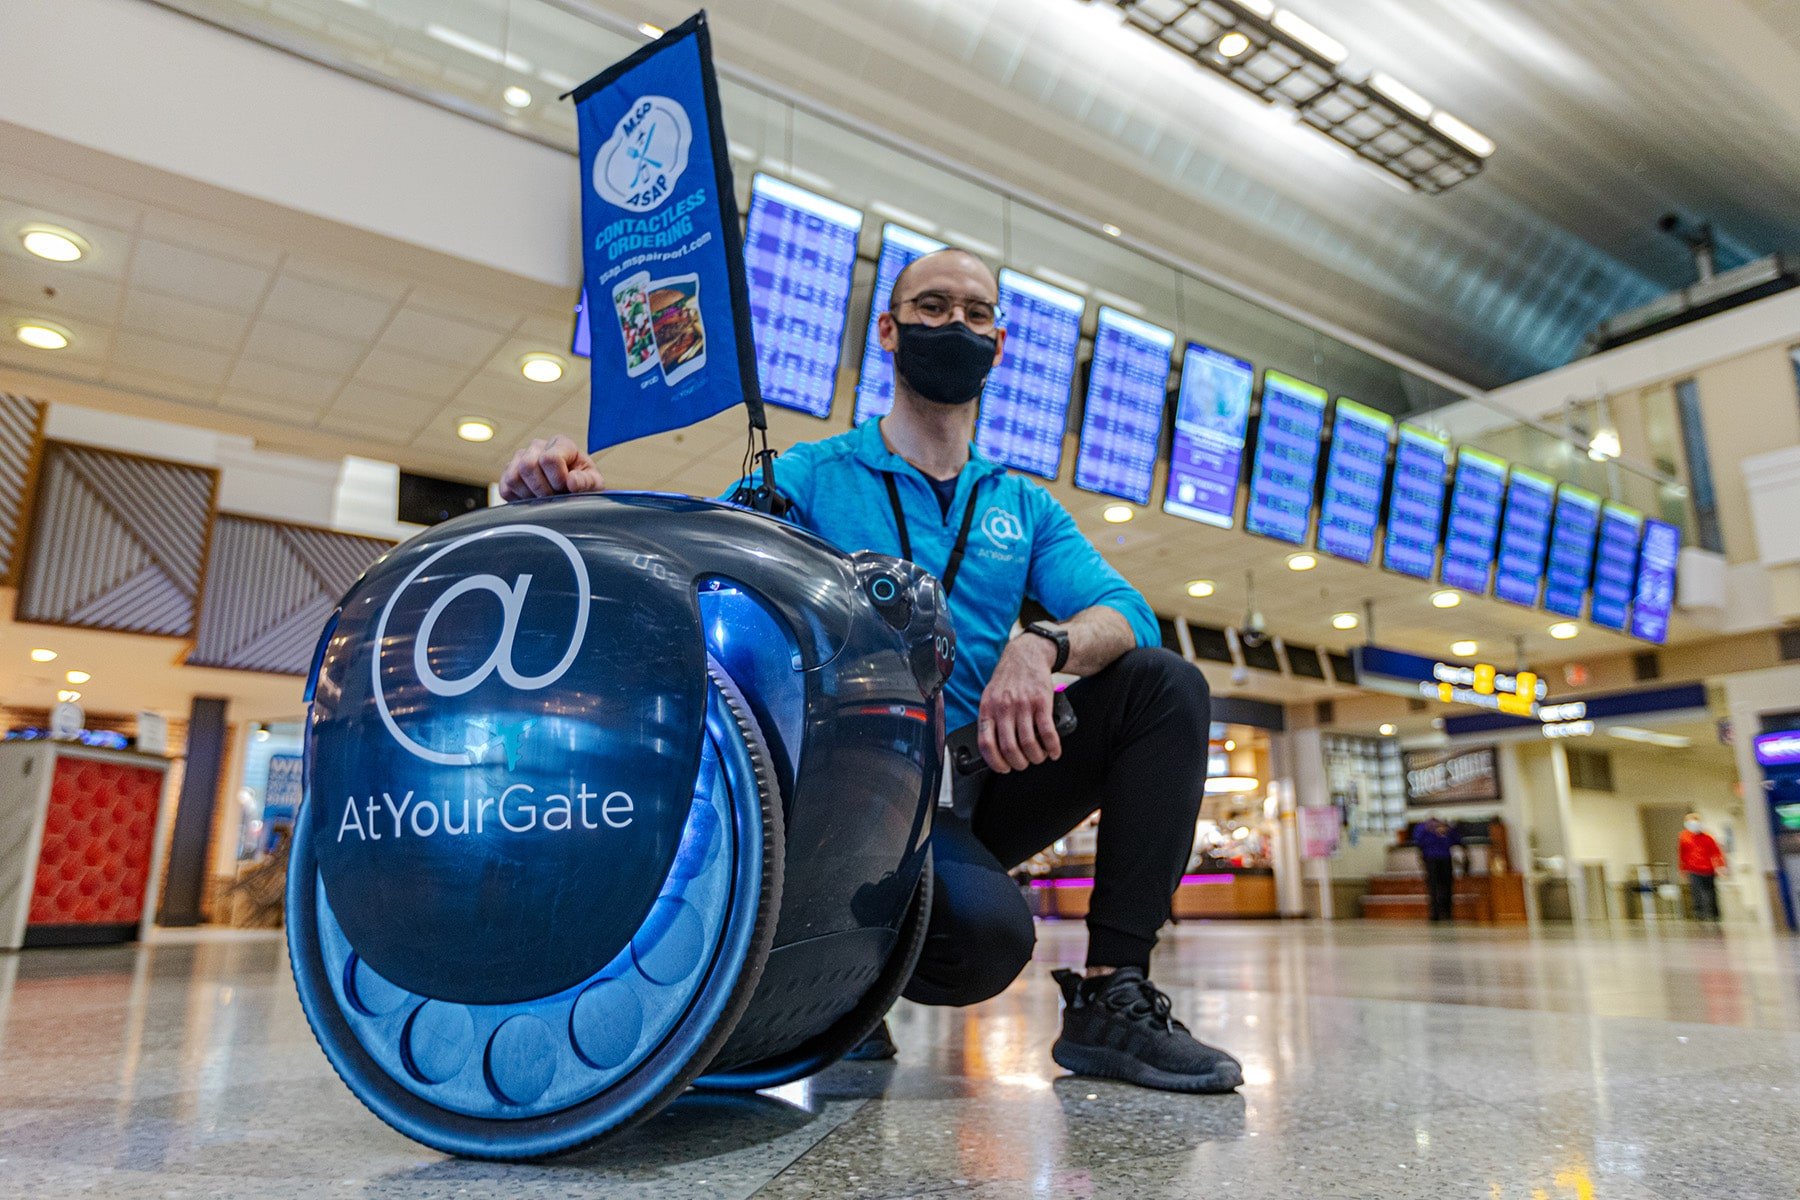 MSP Airport's Newest Agent Is a Droid